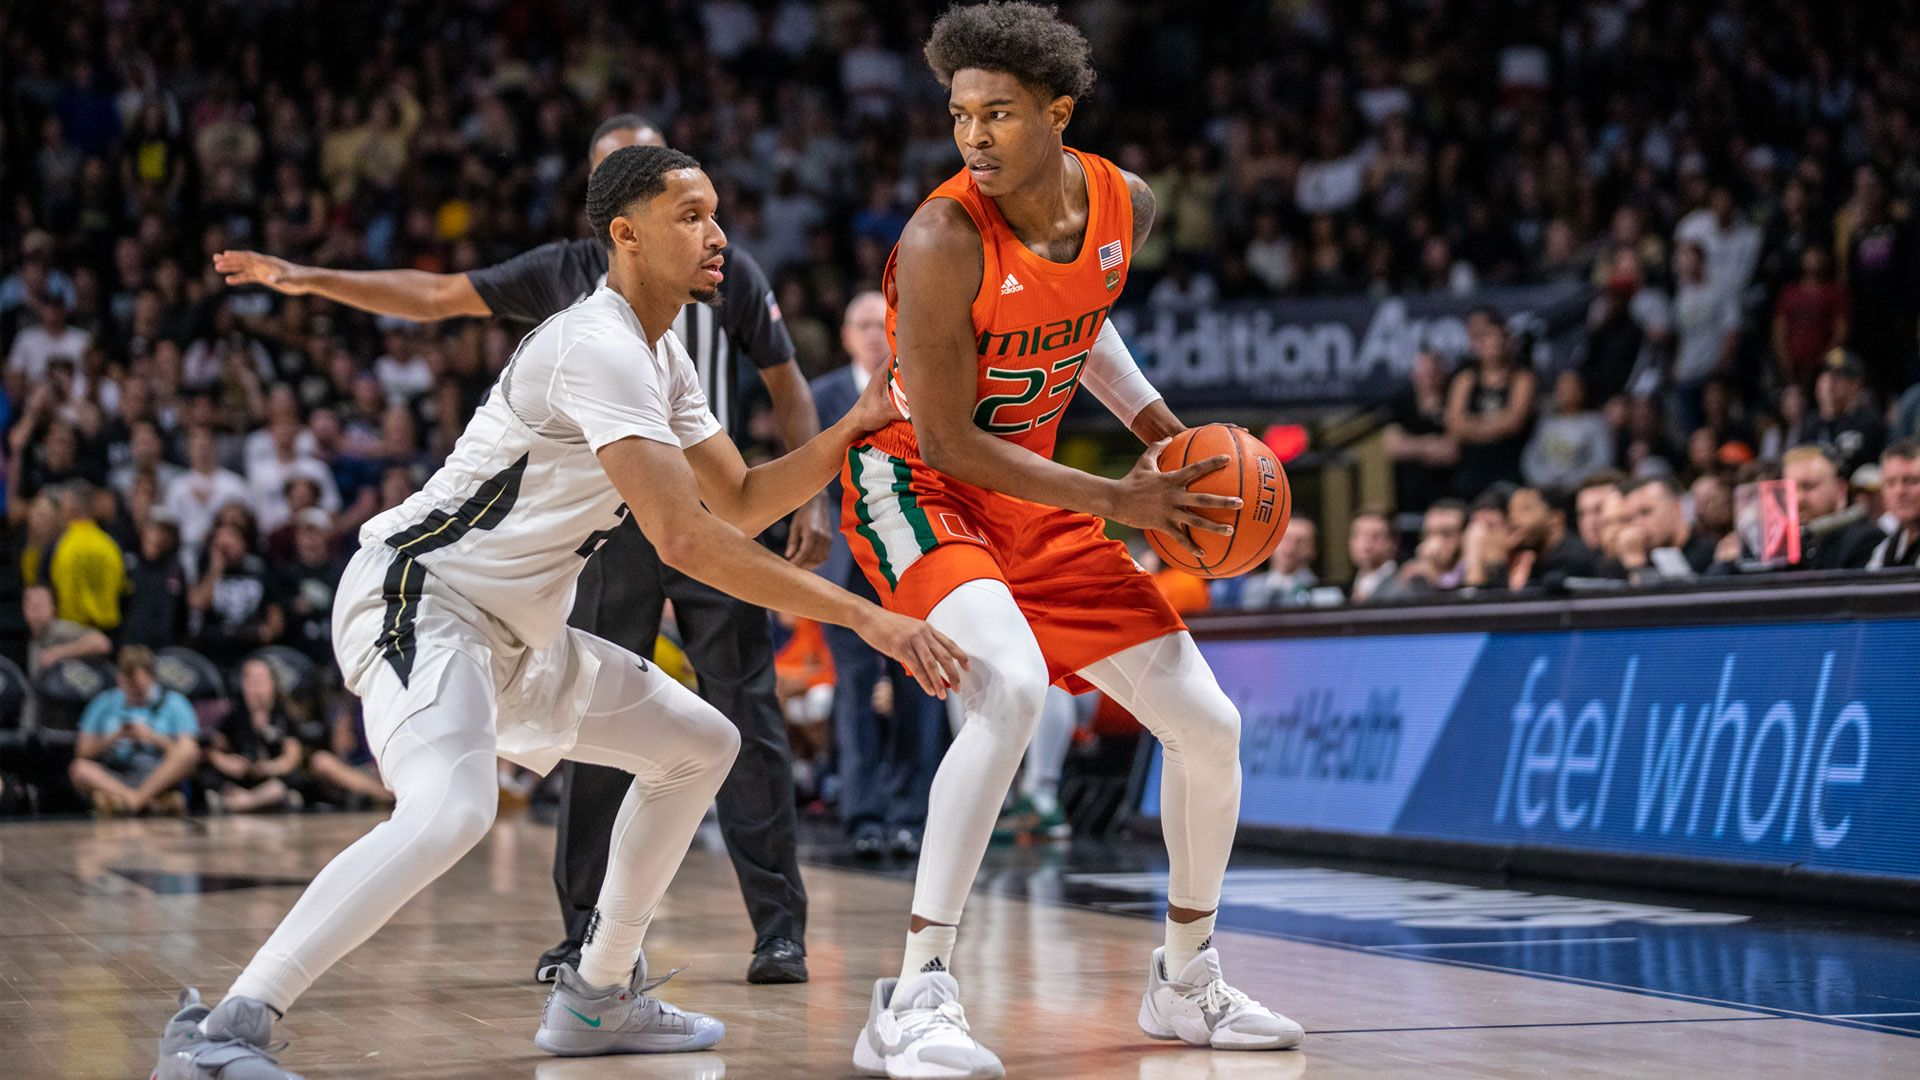 MBB Charges Past UCF, 79-70, in Orlando